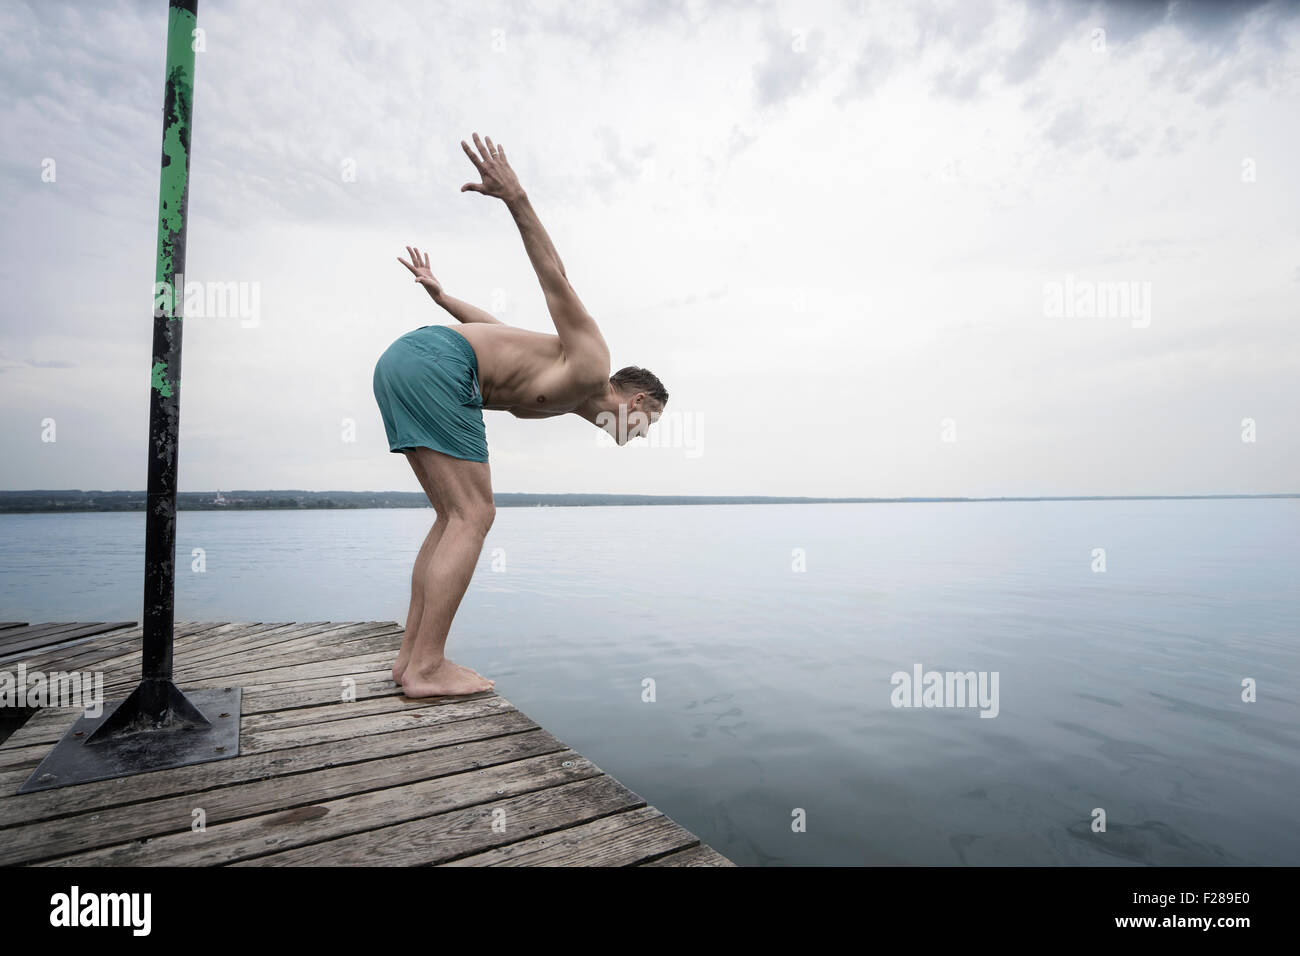 Mature man diving into water on pier, Baden-Wurttemberg, Bavaria, Germany - Stock Image